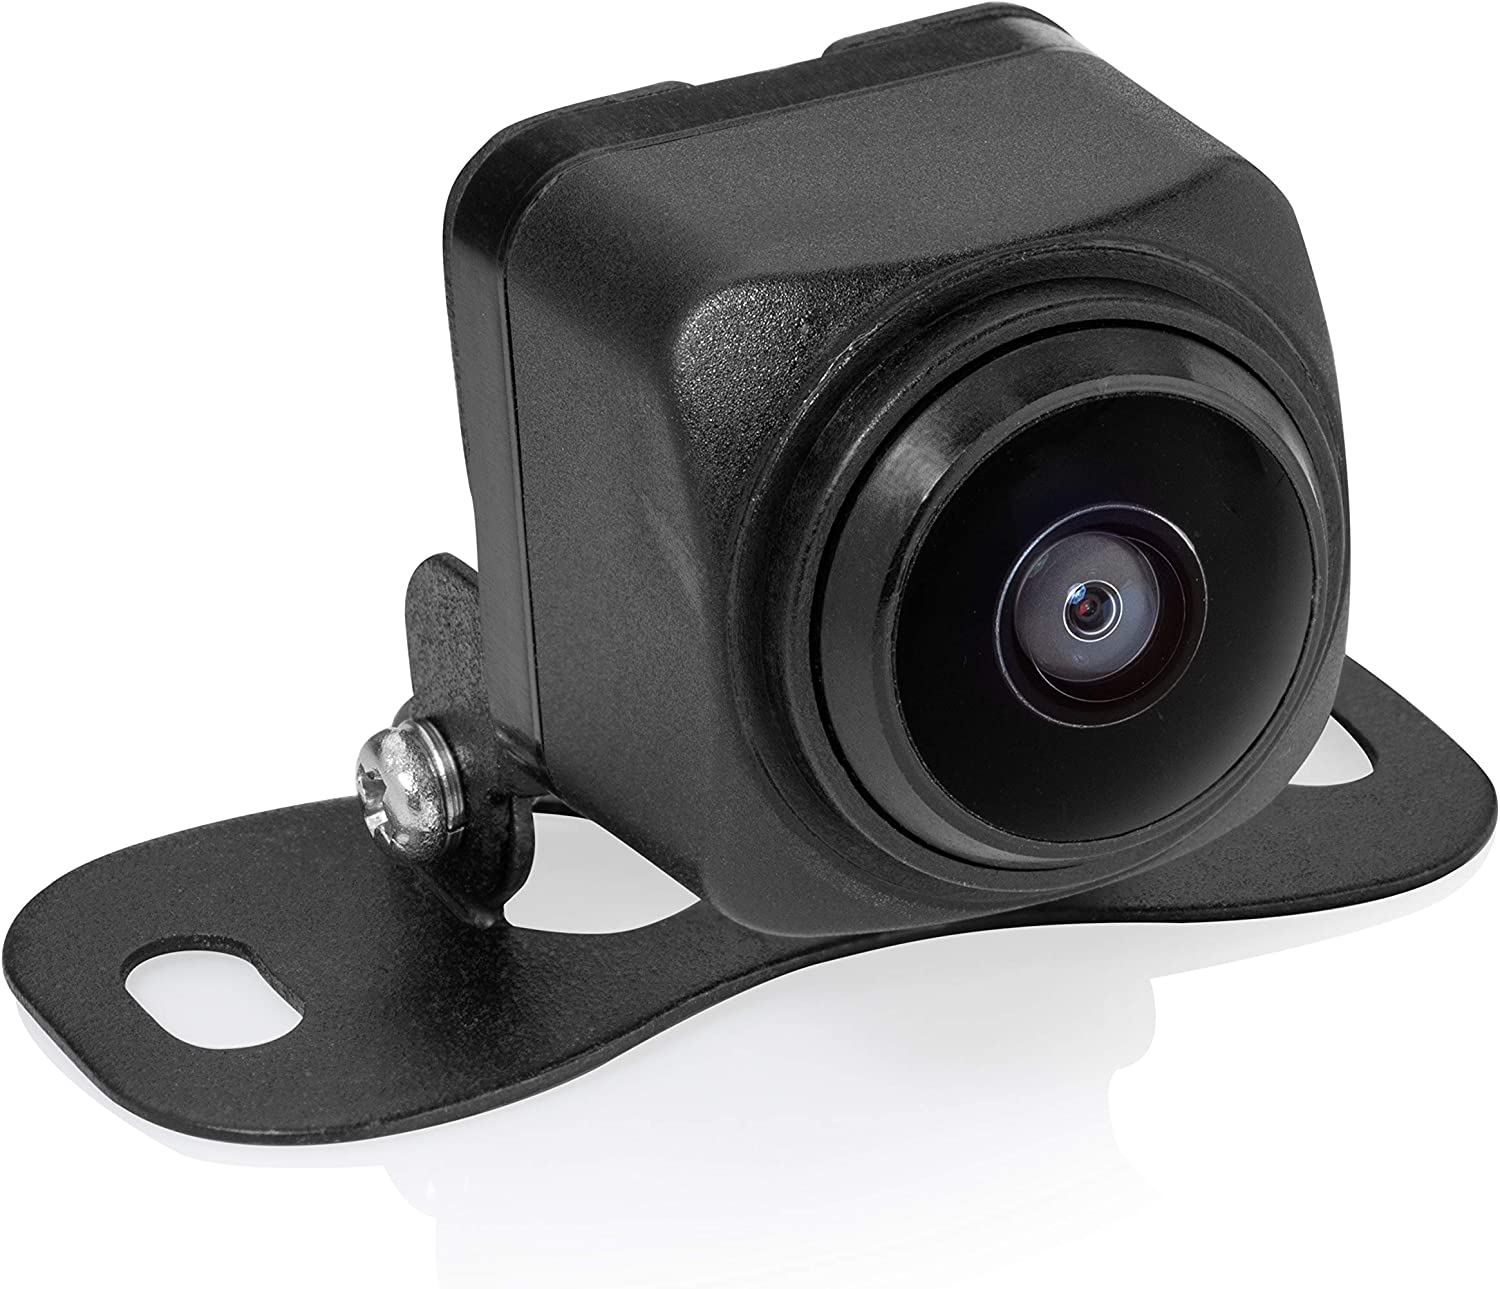 BOYO VTB192 - Universal Mount Backup Camera with Super Wide View Angle